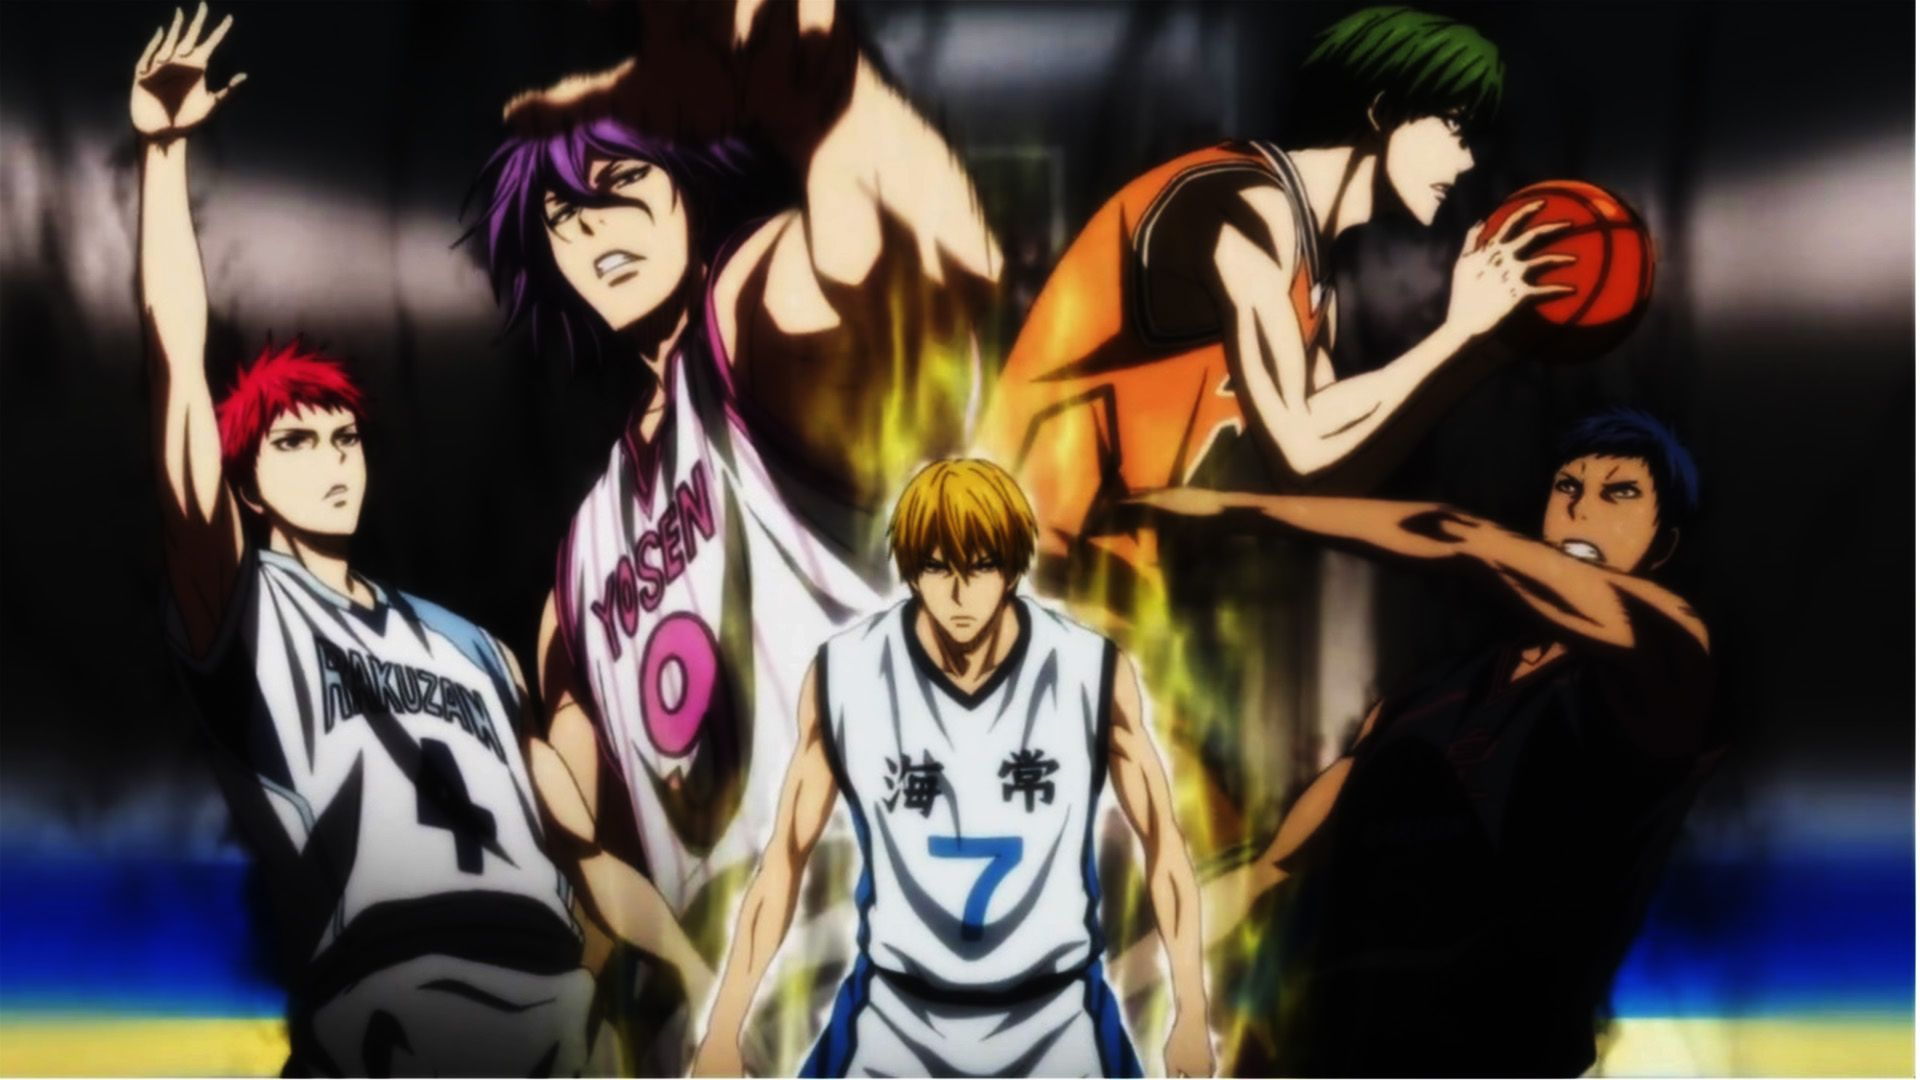 Release Dates and Titles Revealed for Kuroko's Basketball Trilogy Films